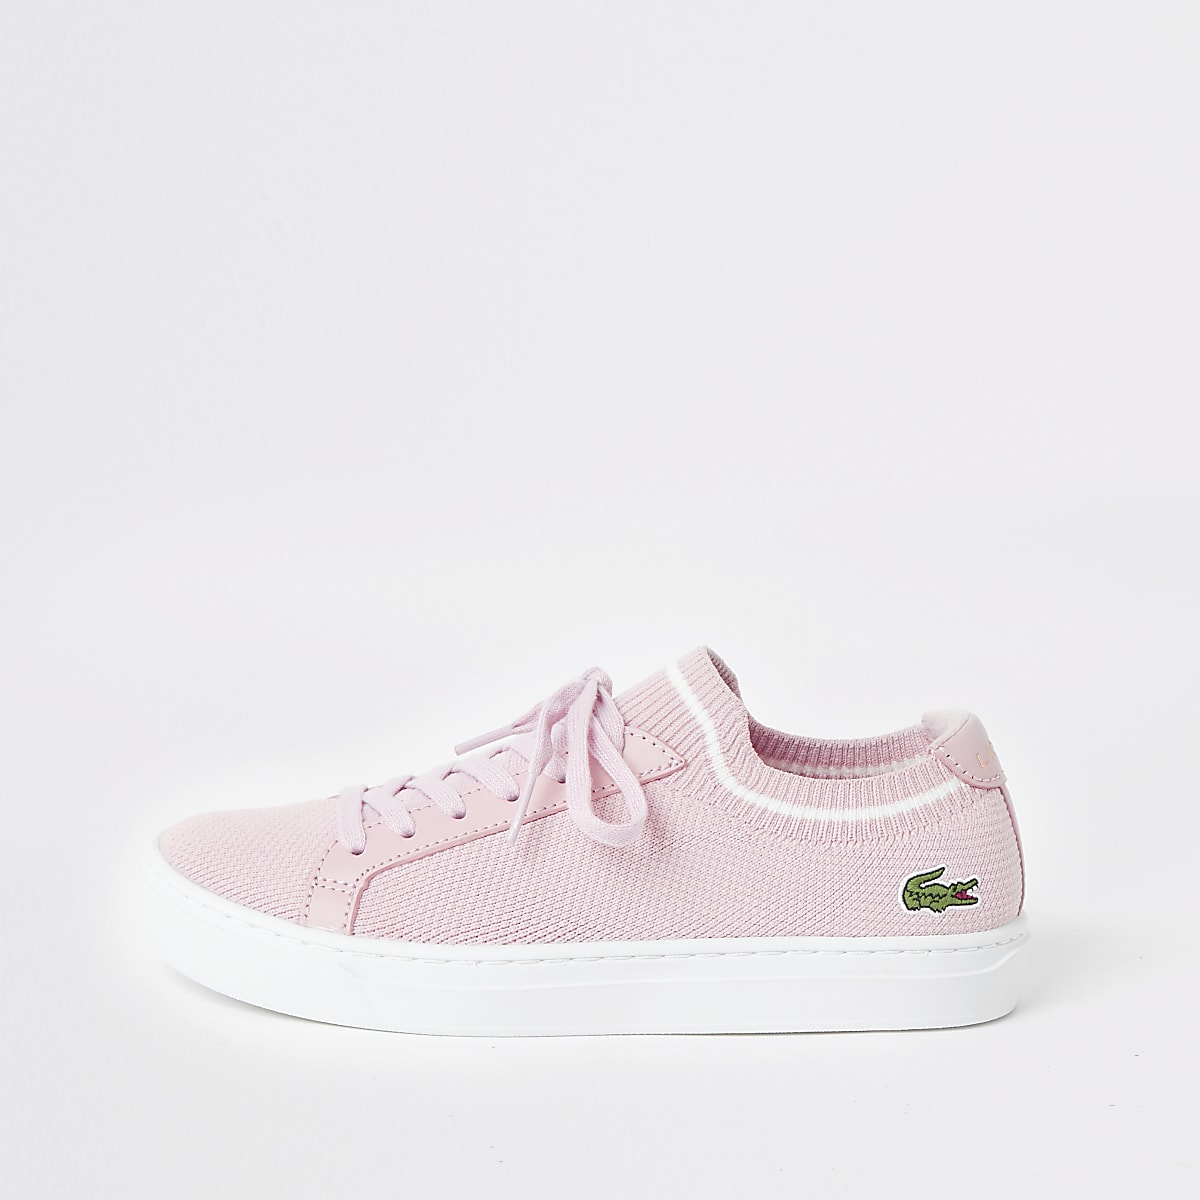 Lacoste pink la piquee lace-up trainers